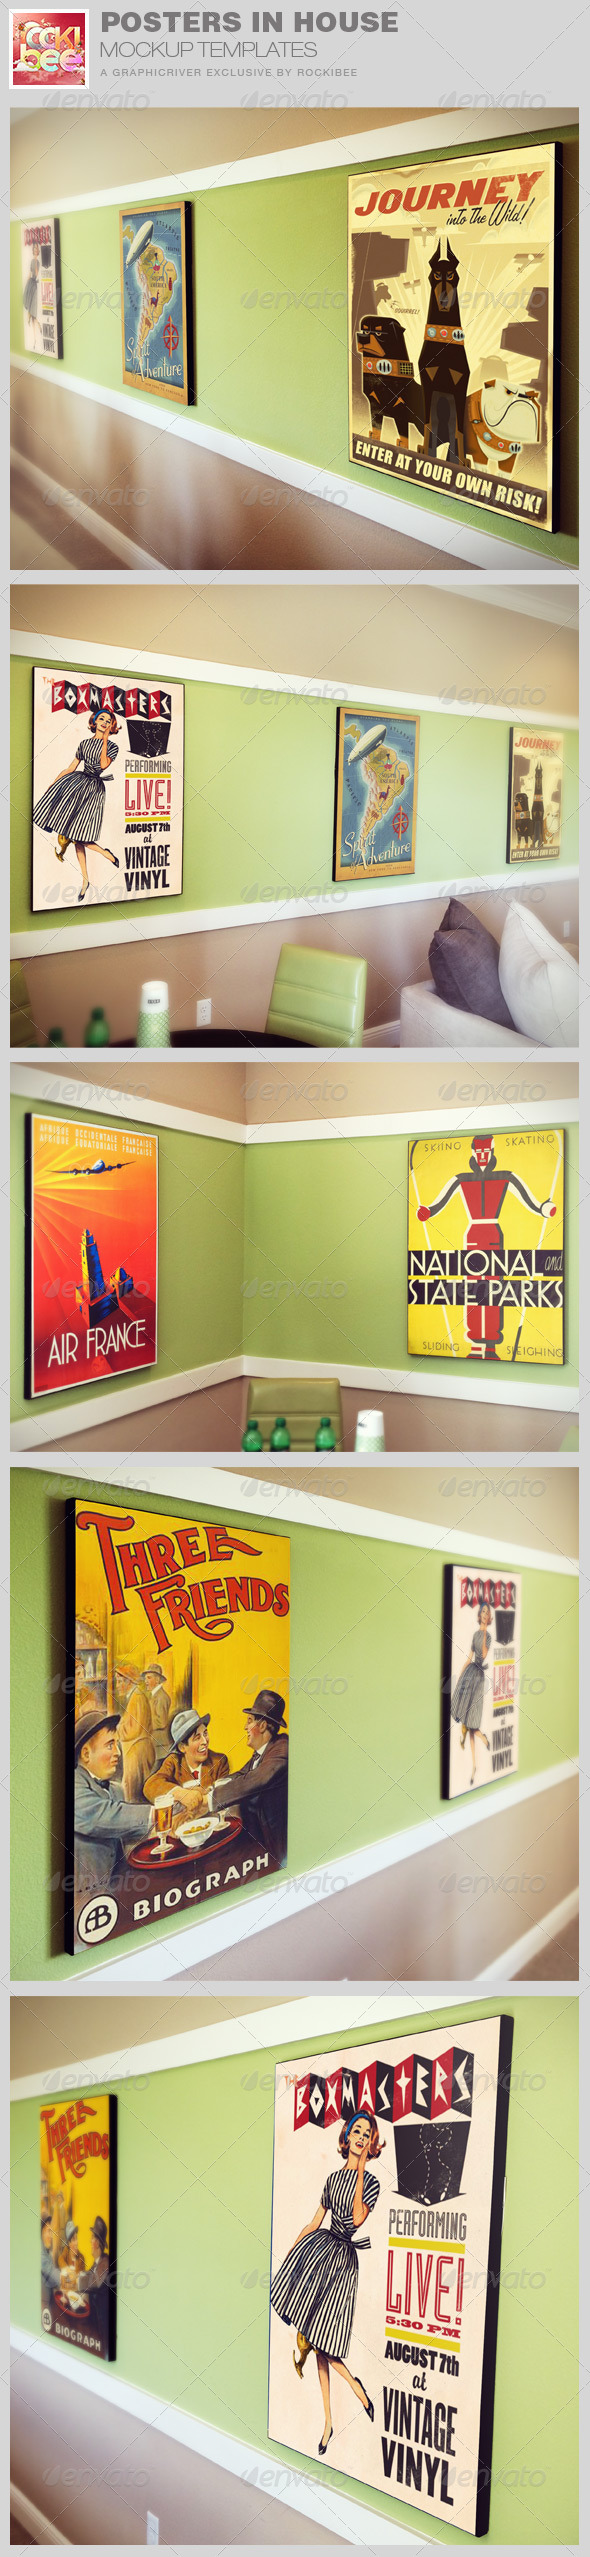 GraphicRiver Poster in House Mockup Templates 8416221